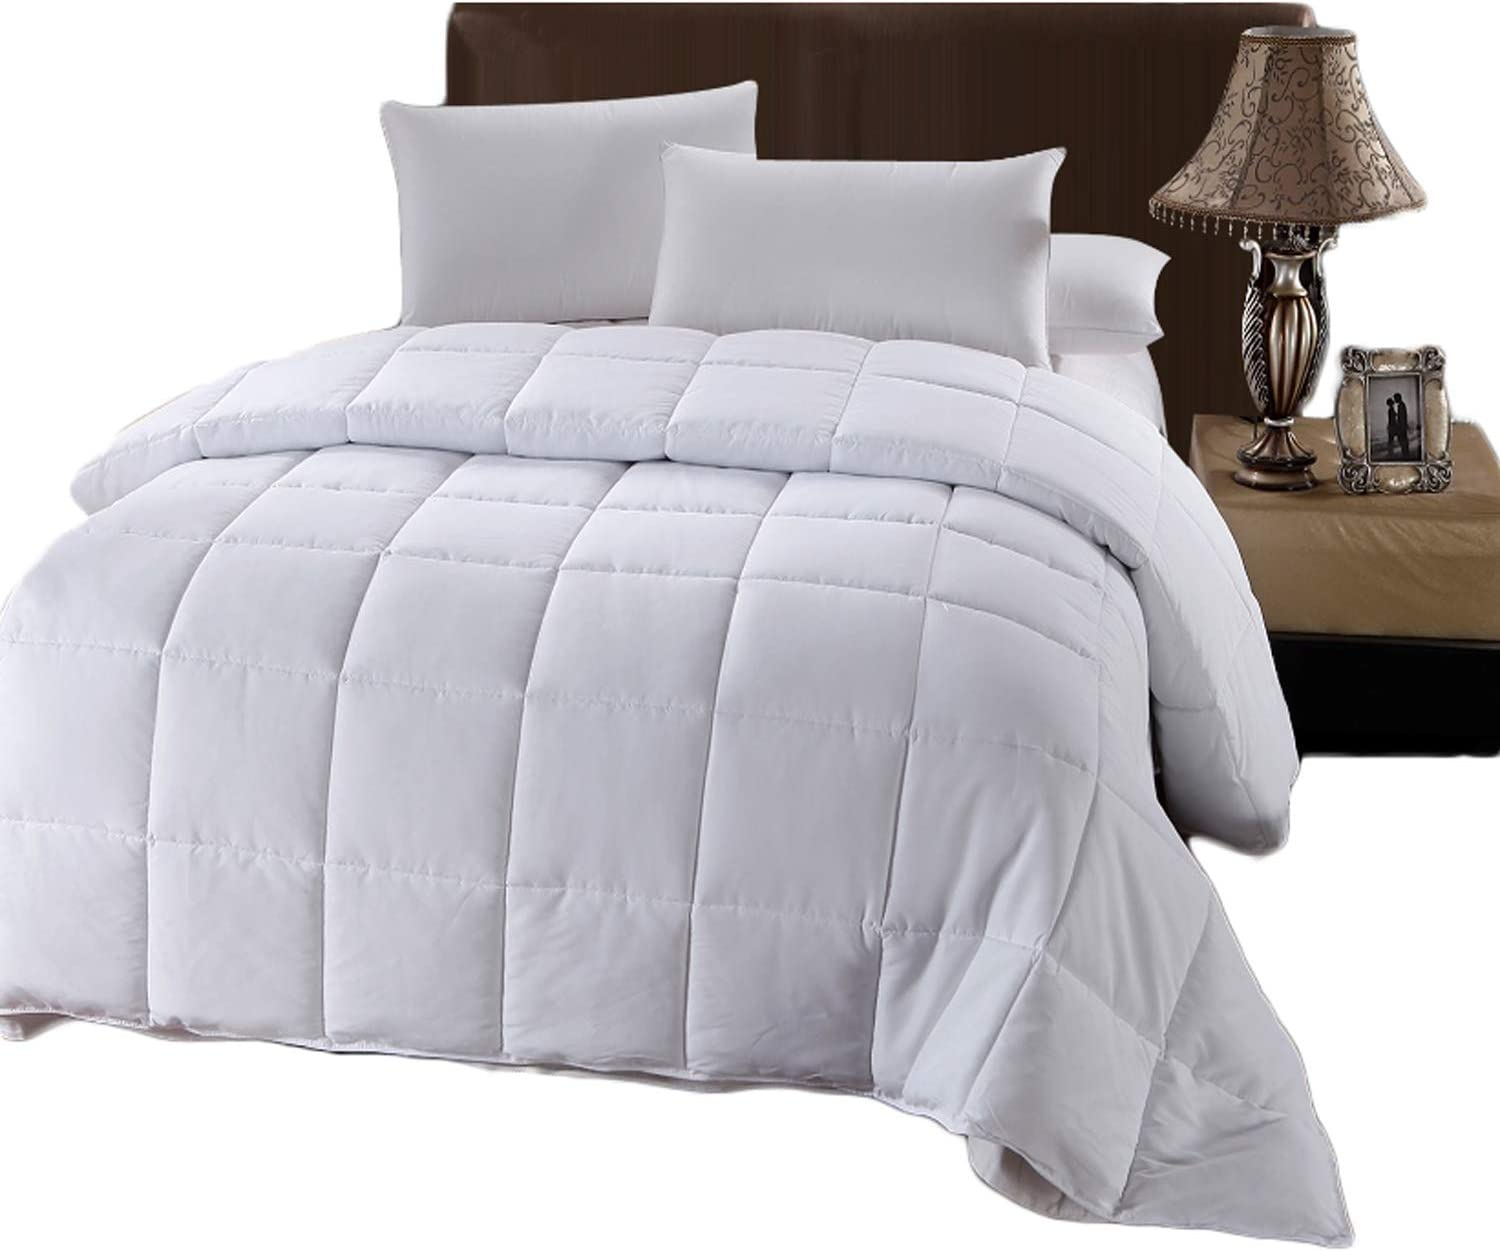 Amazon Com Royal Hotel Comforter White Down Alternative Queen Quilted Duvet Insert Hypoallergenic All Season Comforter With Corner Tabs Hotel Down Alternative Plush Fill Queen Home Kitchen